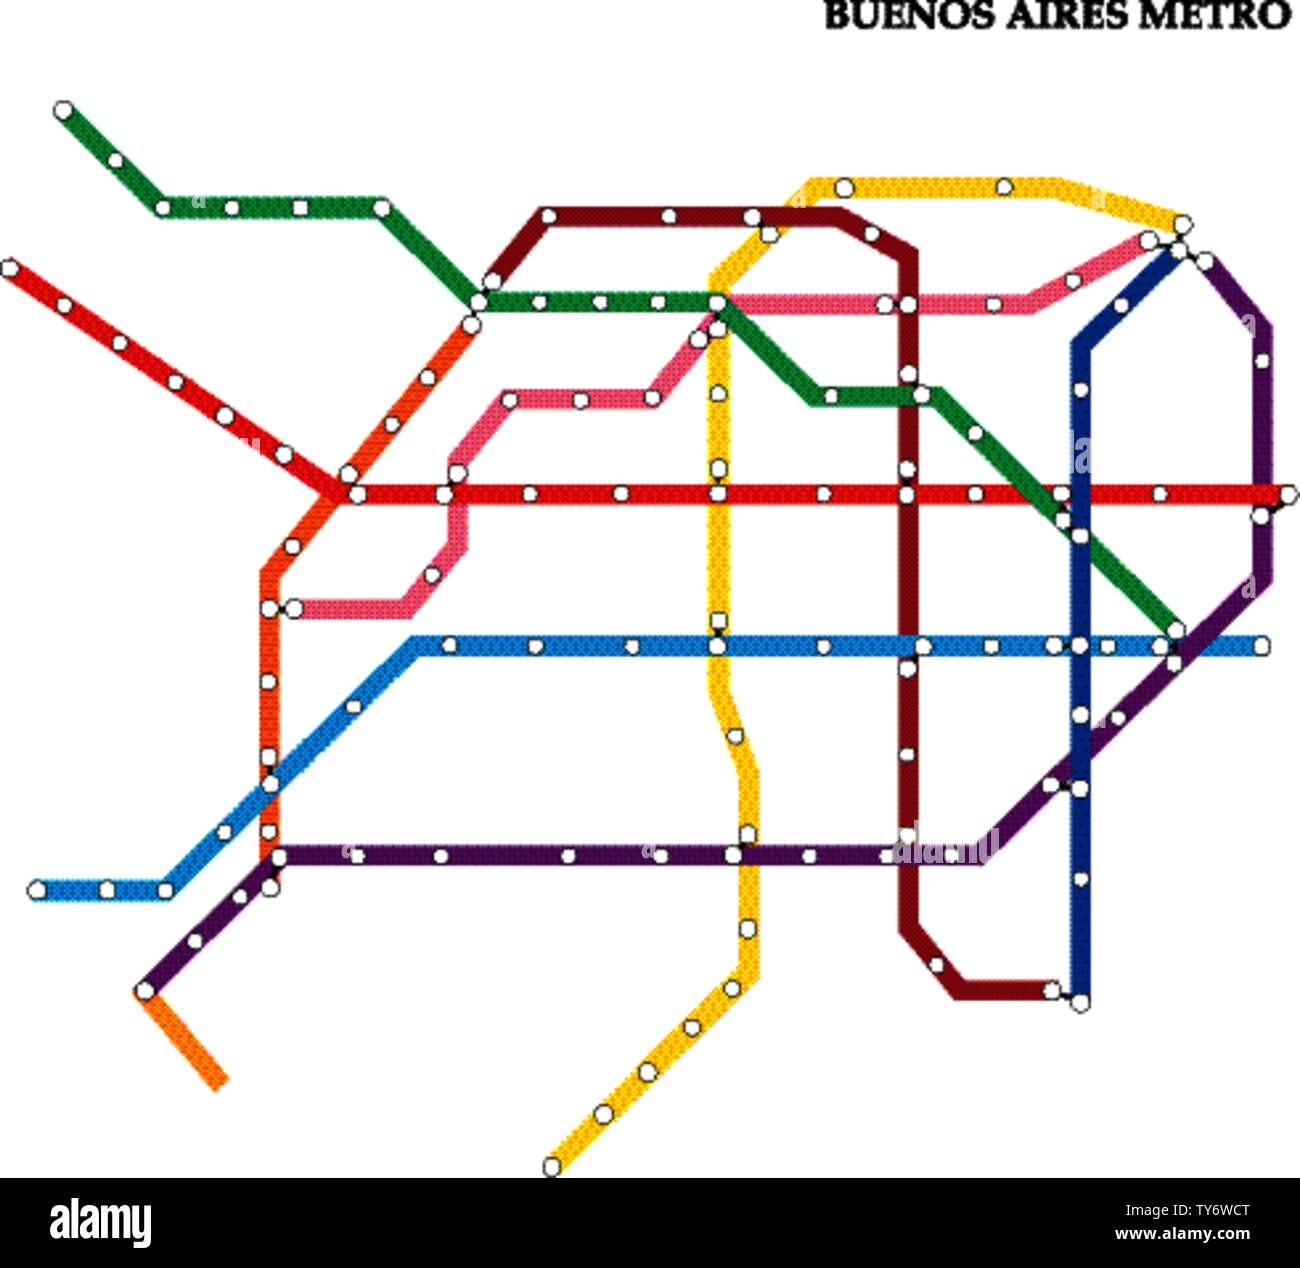 Map of the Buenos Aires metro, Subway, Template of city transportation scheme for underground road. Stock Vector